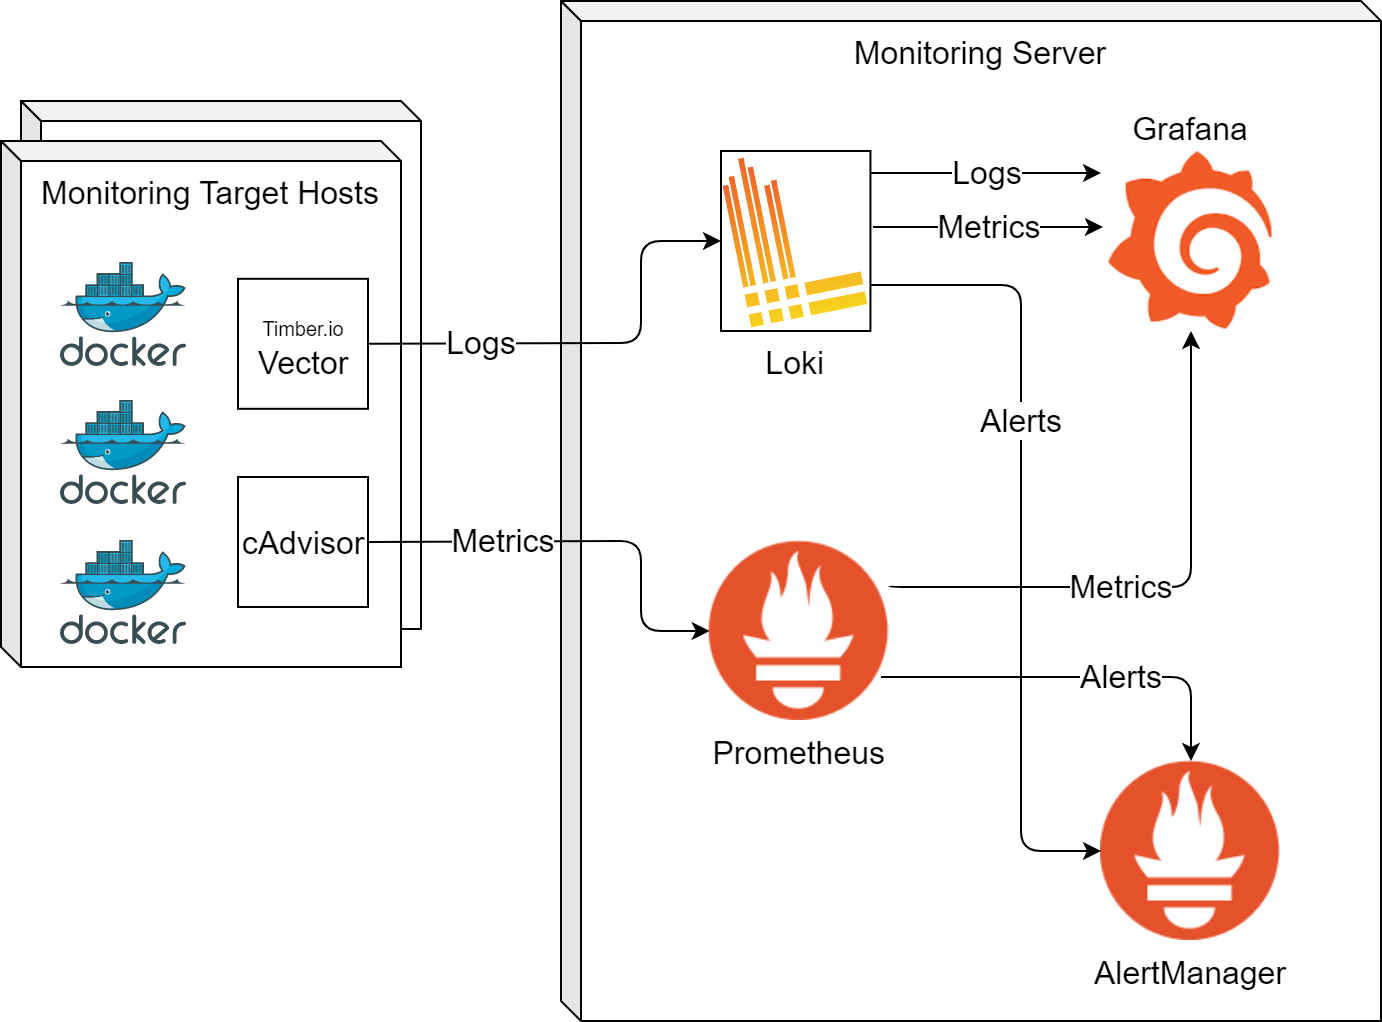 The deployment and data flow